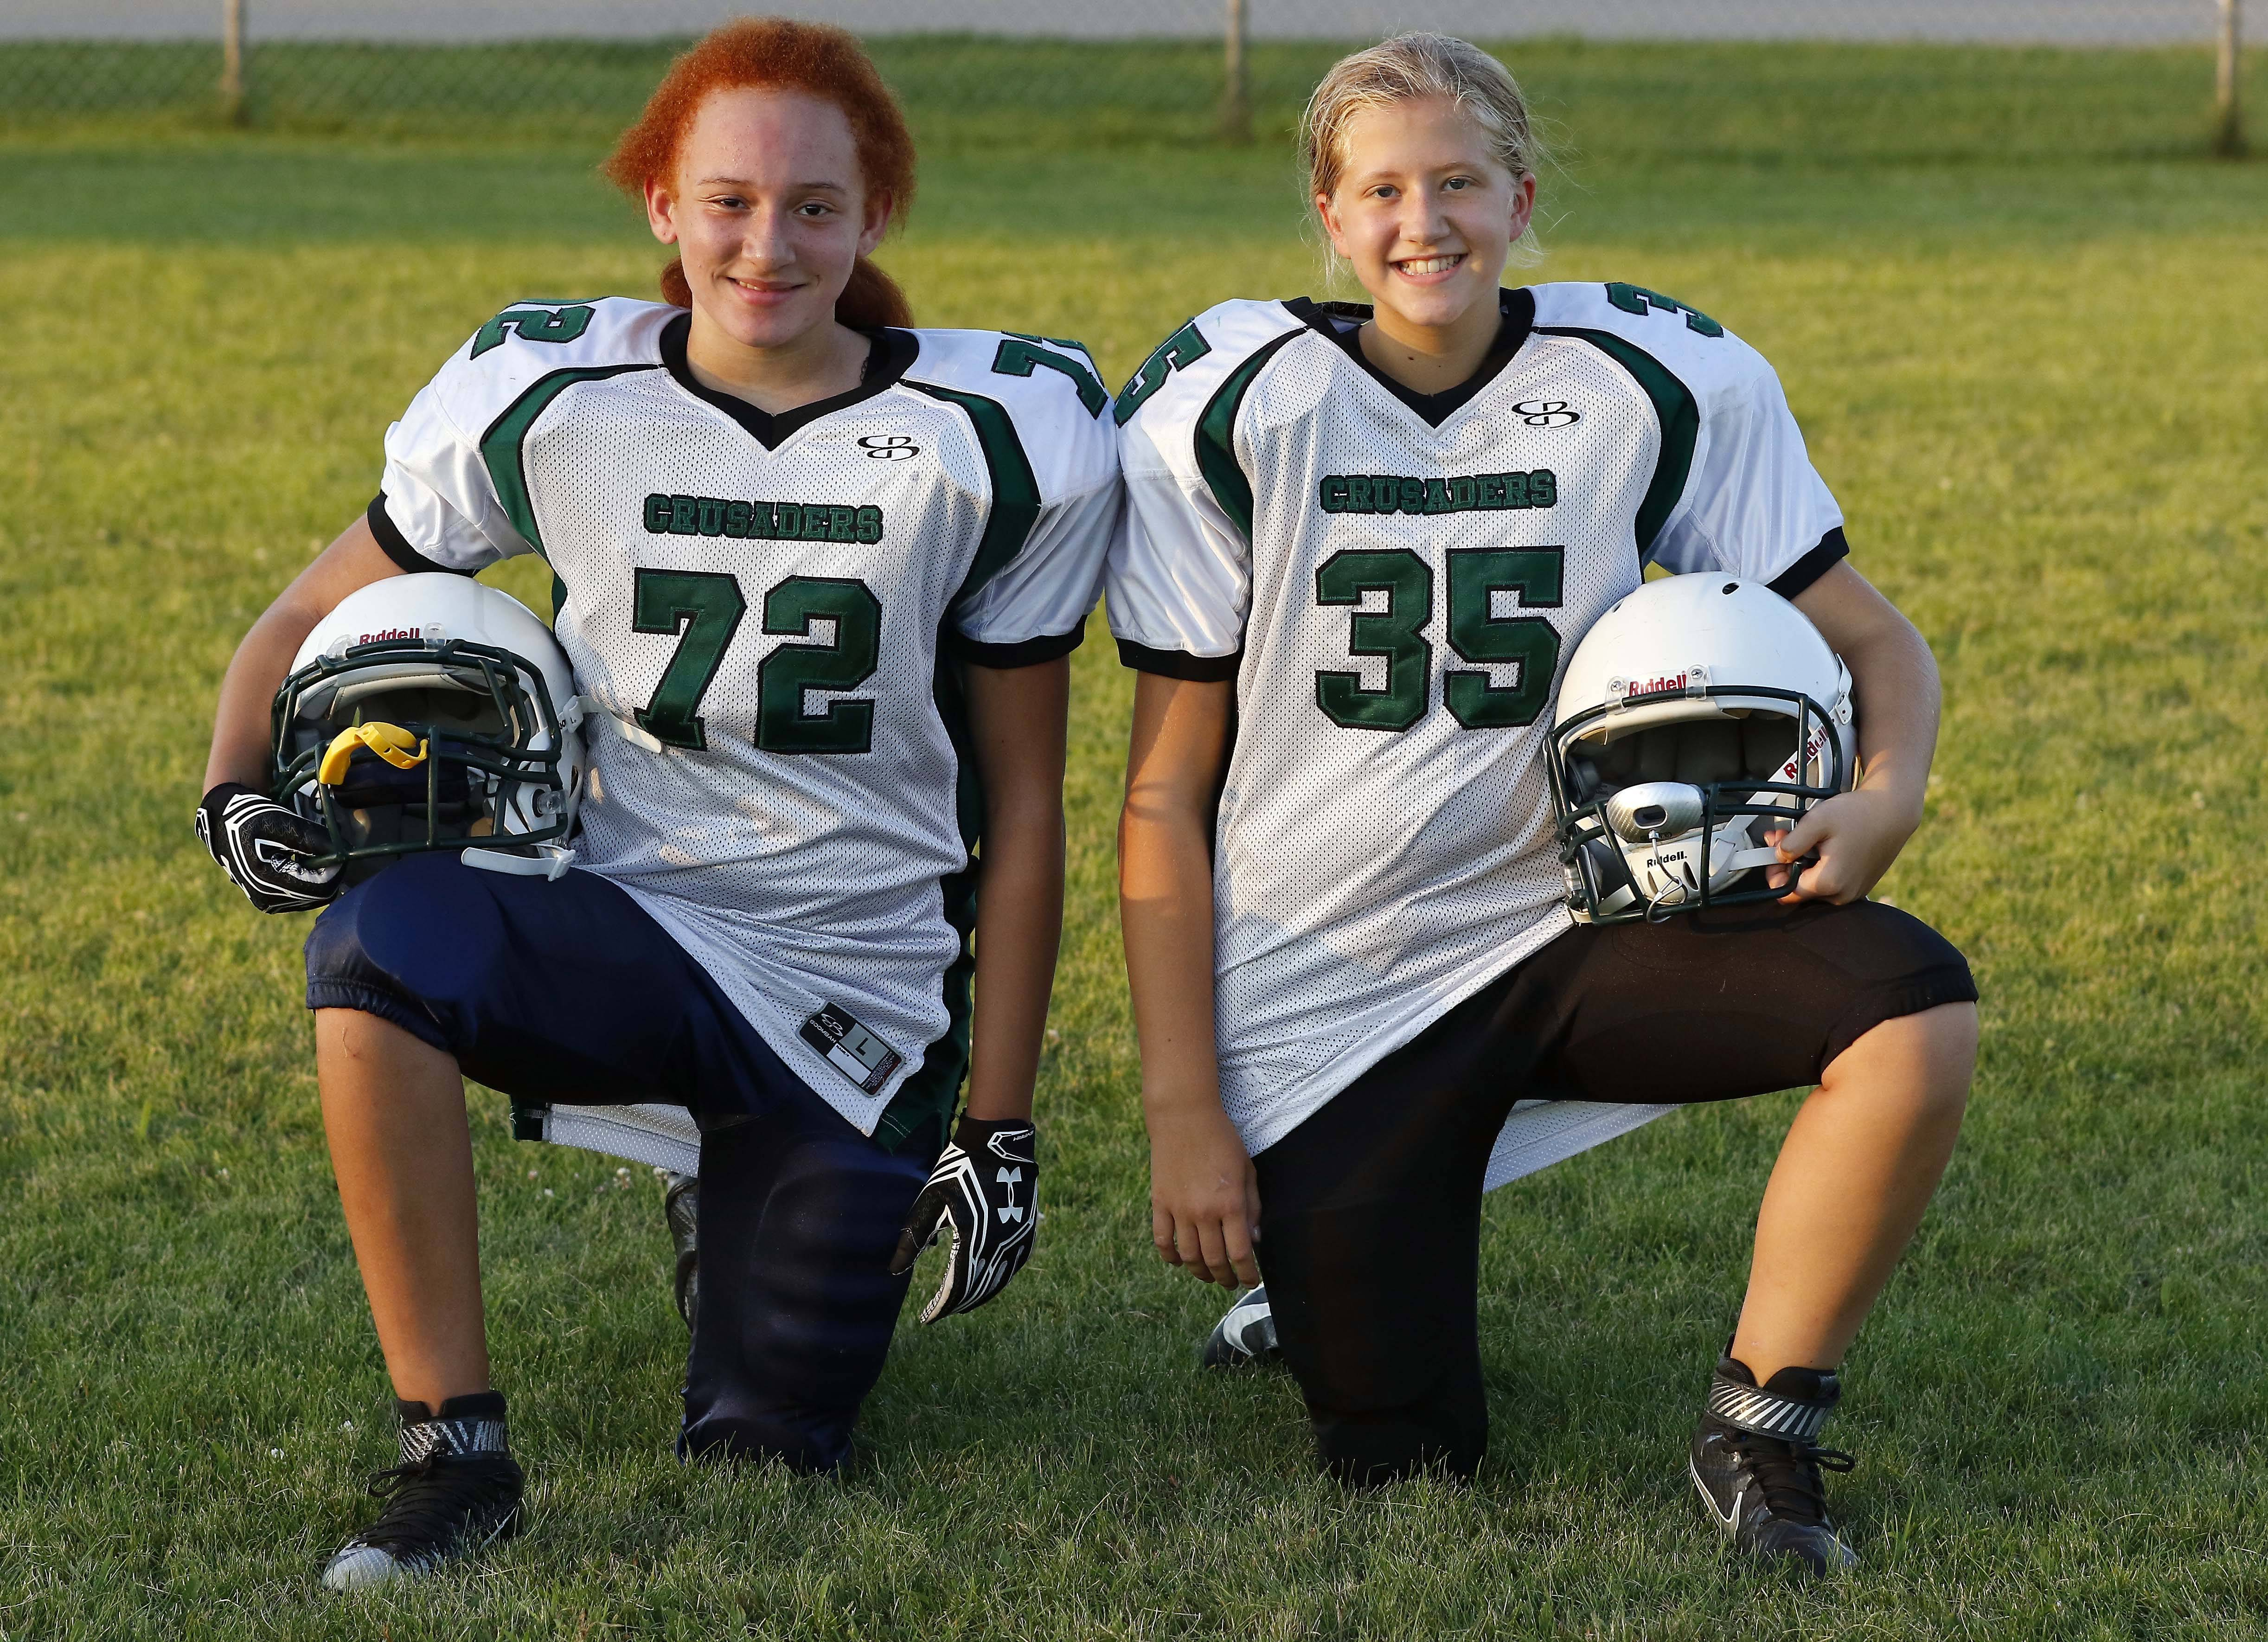 From left, Zoie Lewis and Sophia Olech, a sixth-grader at Haines Middle in St. Charles, are two of three girls playing alongside boys on the Elgin-based Crusaders middle school football team.